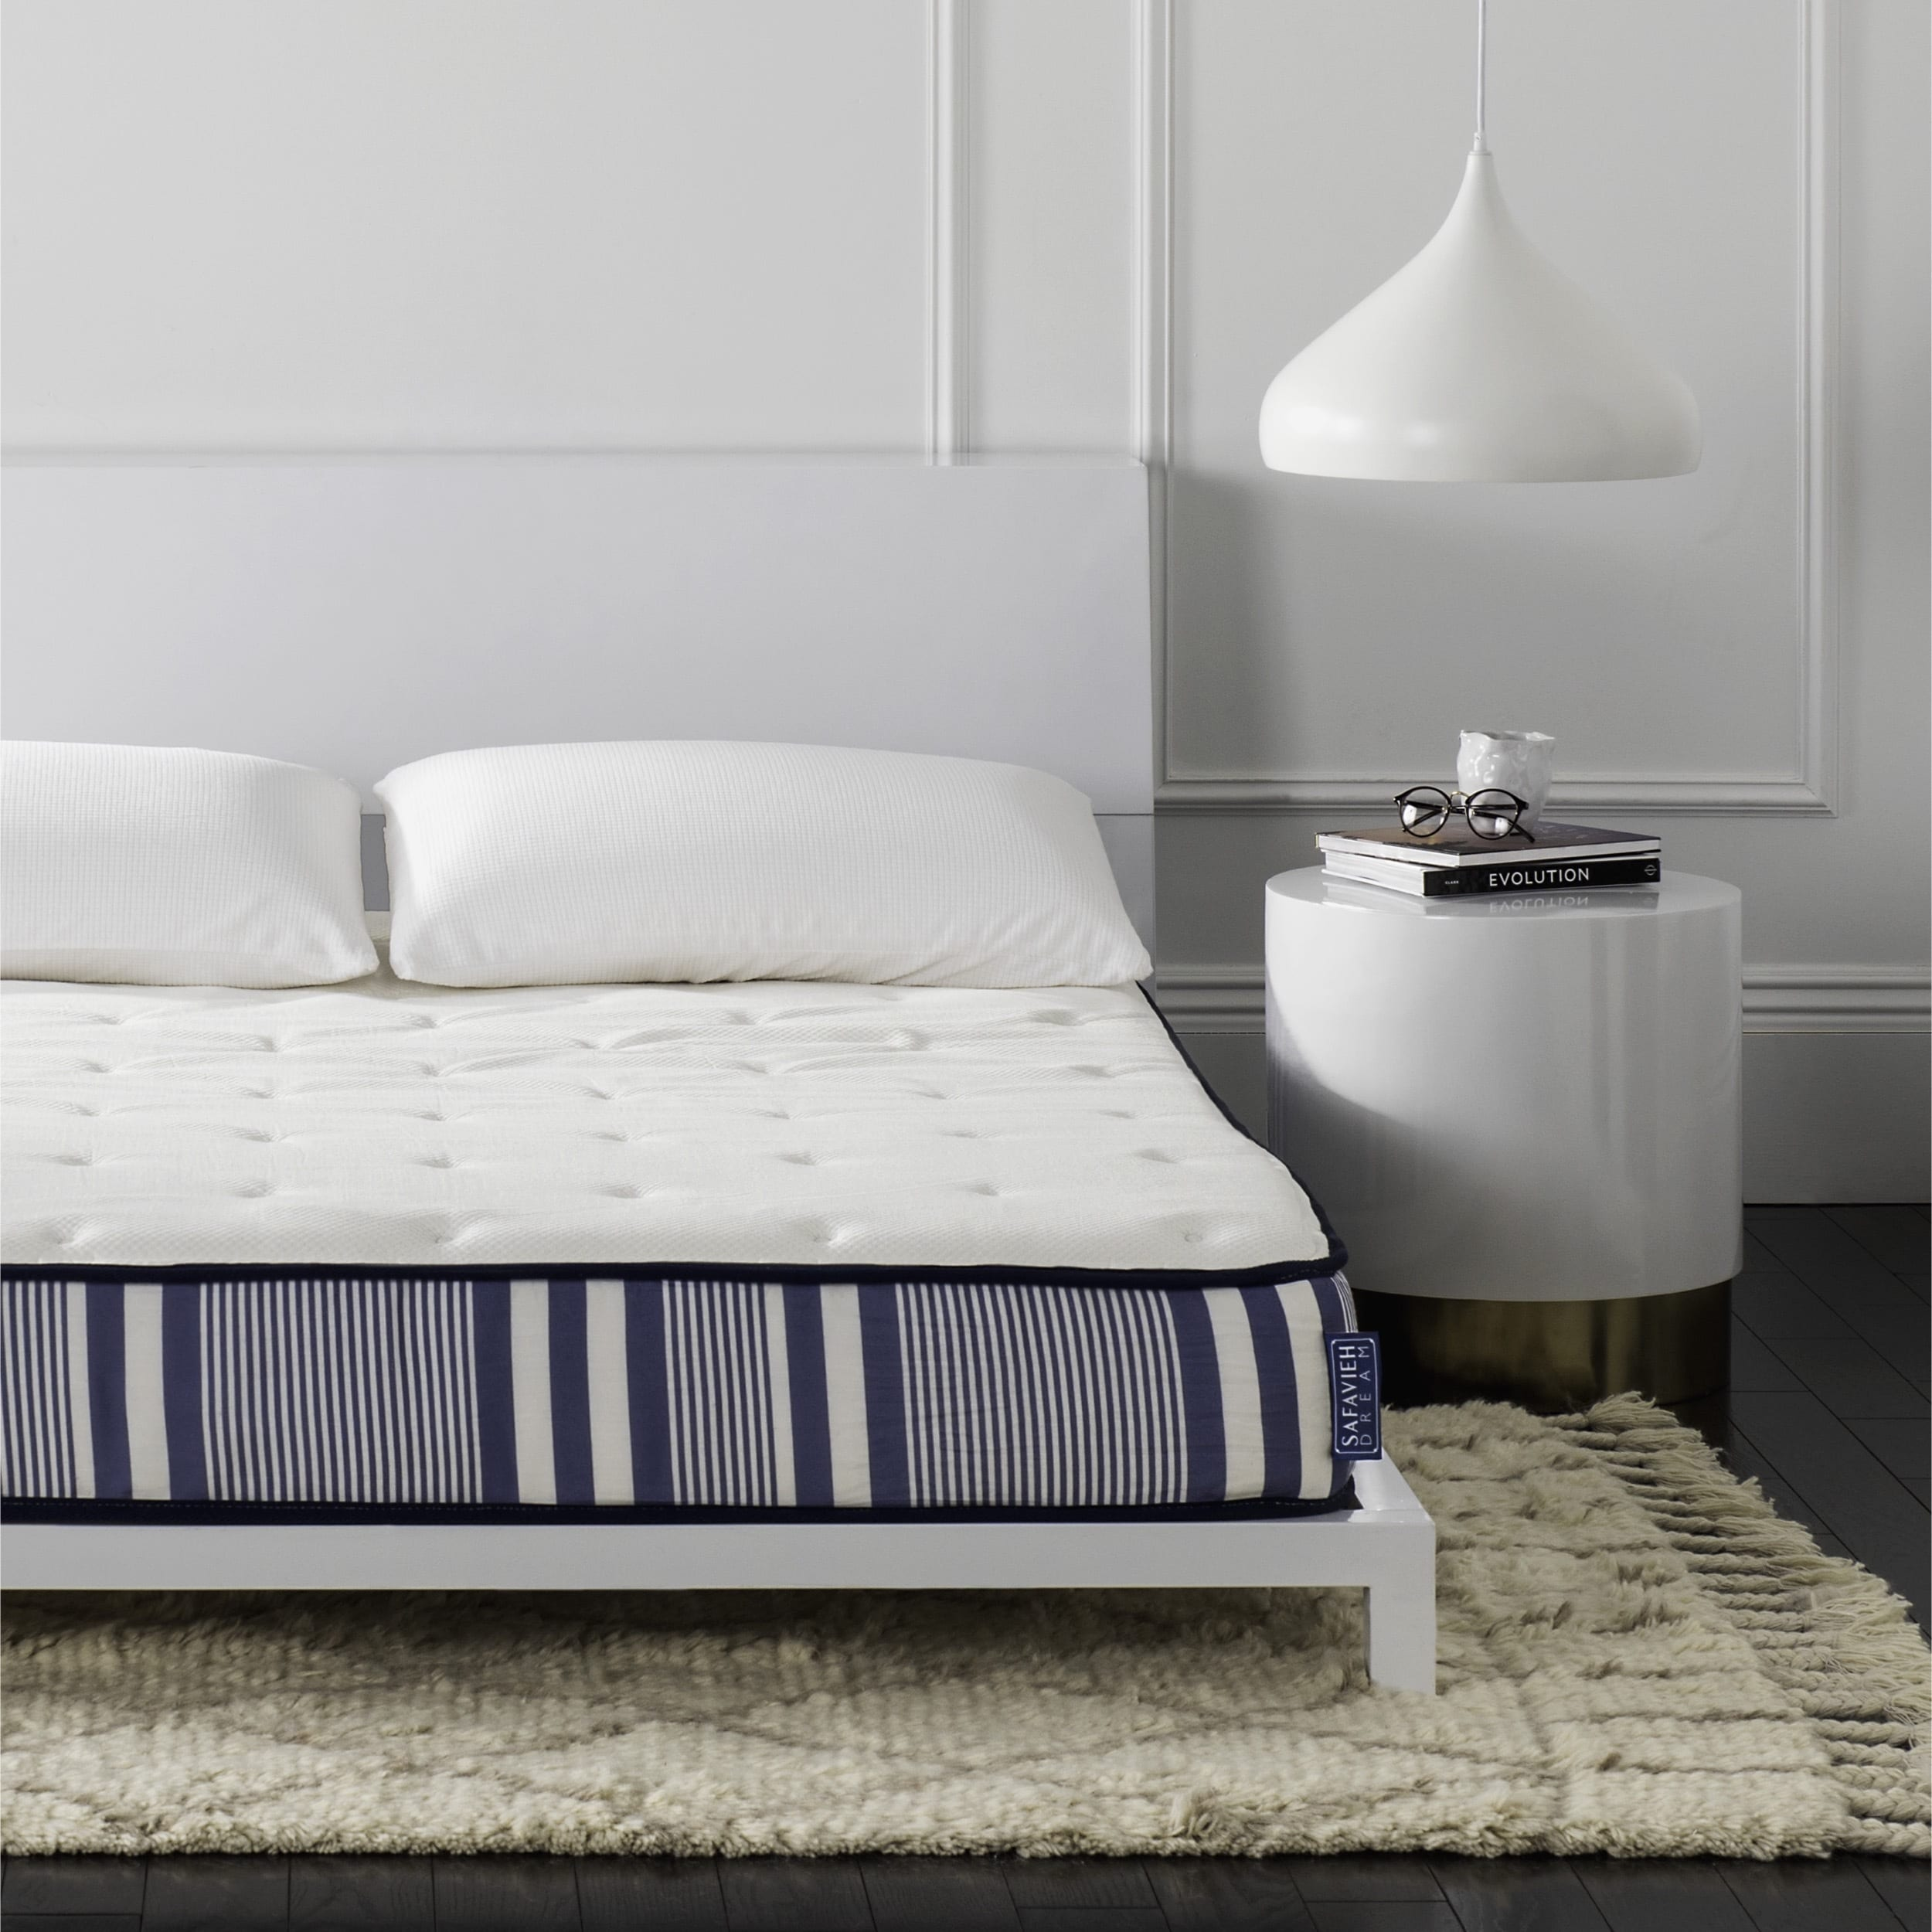 Safavieh Bliss 8-inch Spring Full-size Mattress Bed-in-a-...